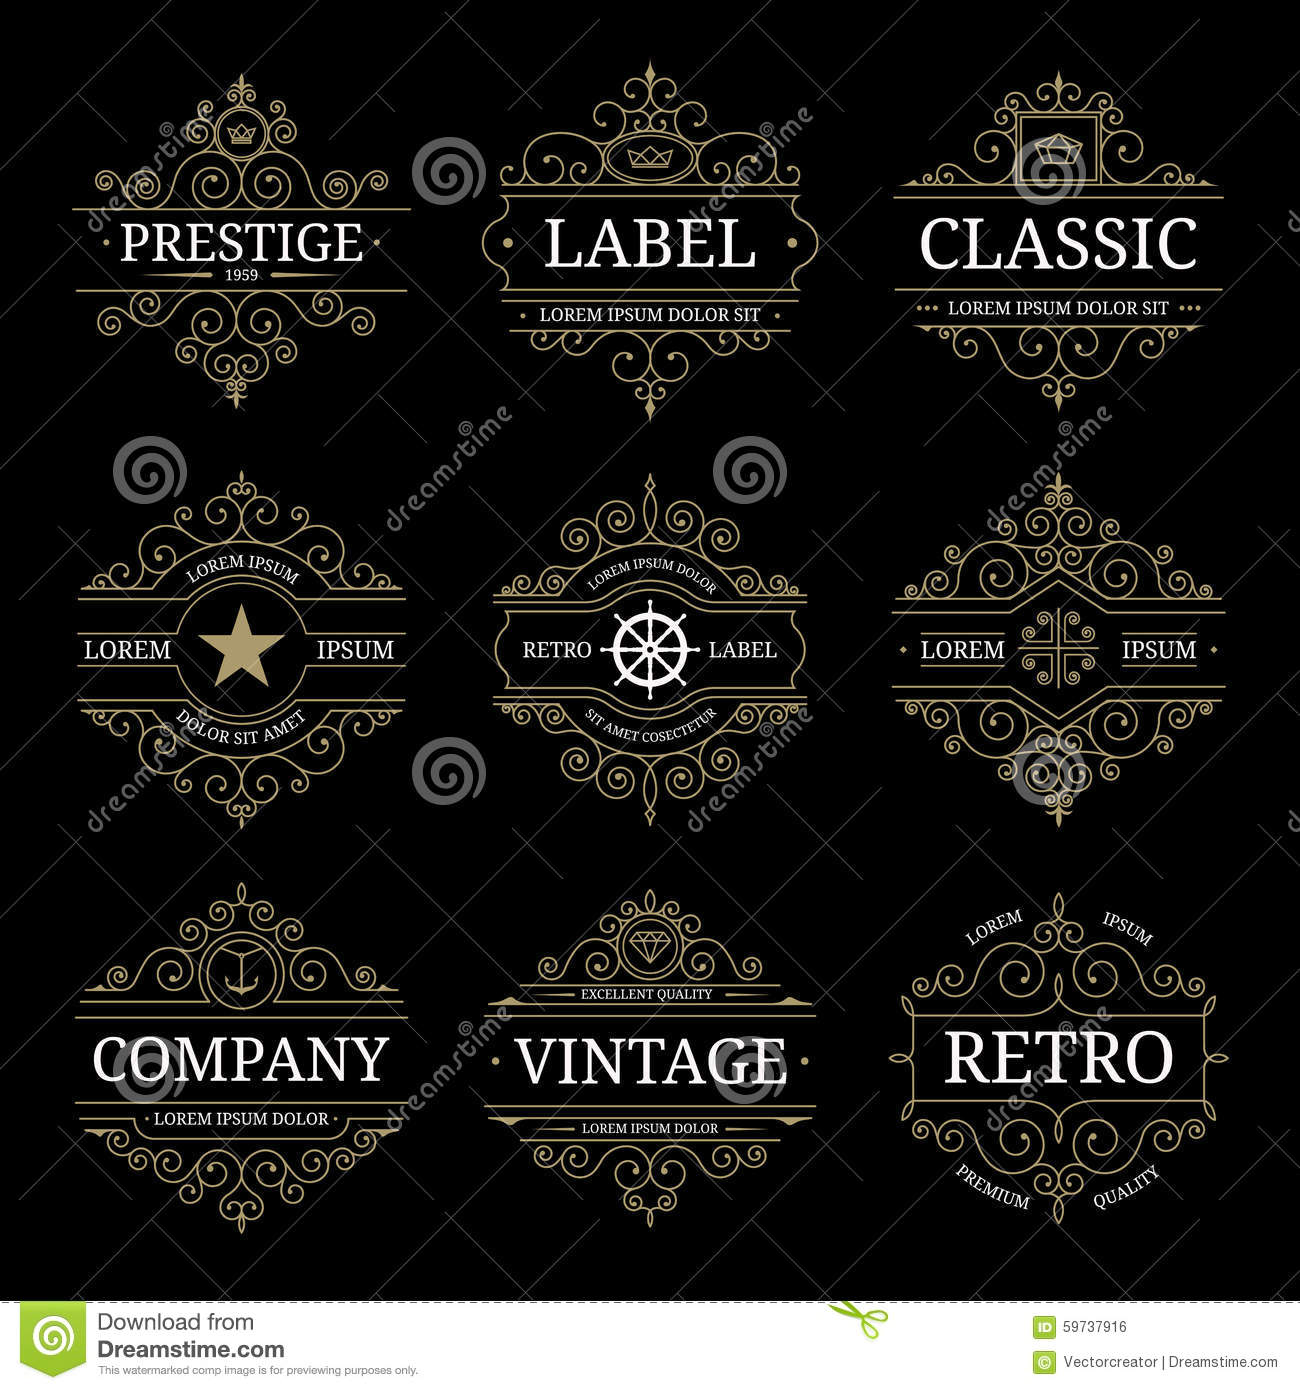 Grupo de moldes luxuosos do logotipo do vintage retro